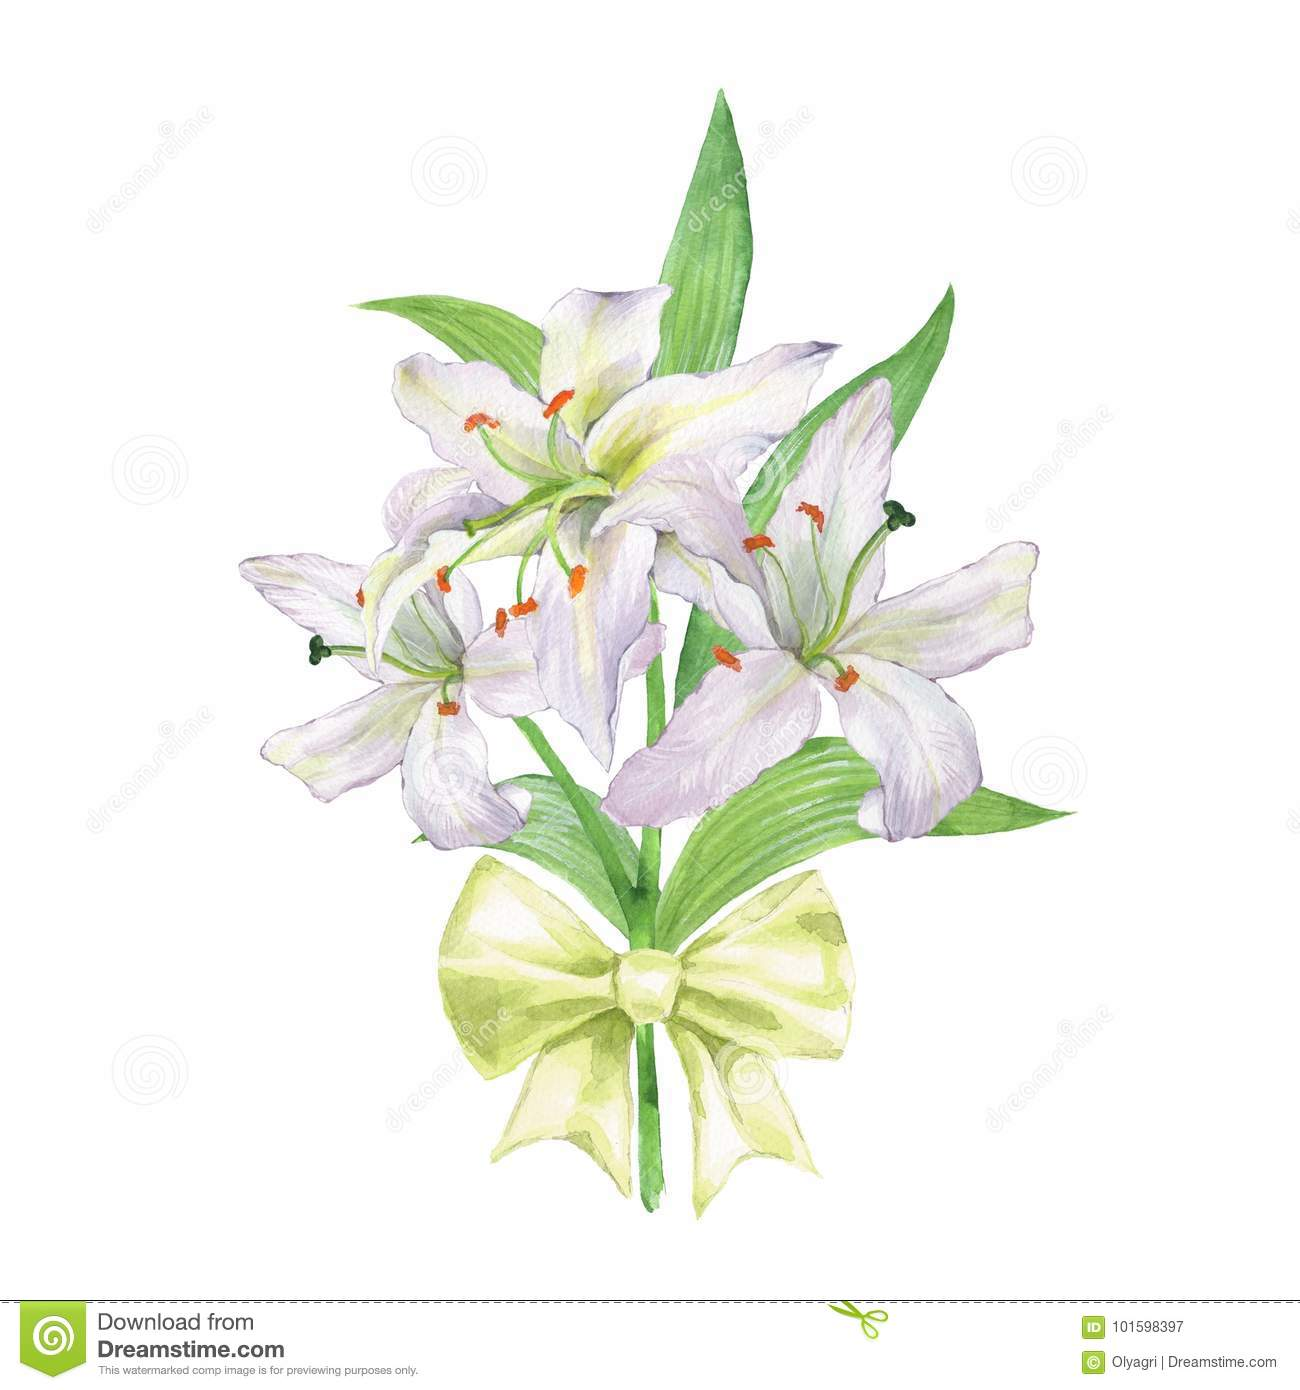 Watercolor bouquet of lily 2 stock image image of floral element watercolor bouquet of lily white flowers izmirmasajfo